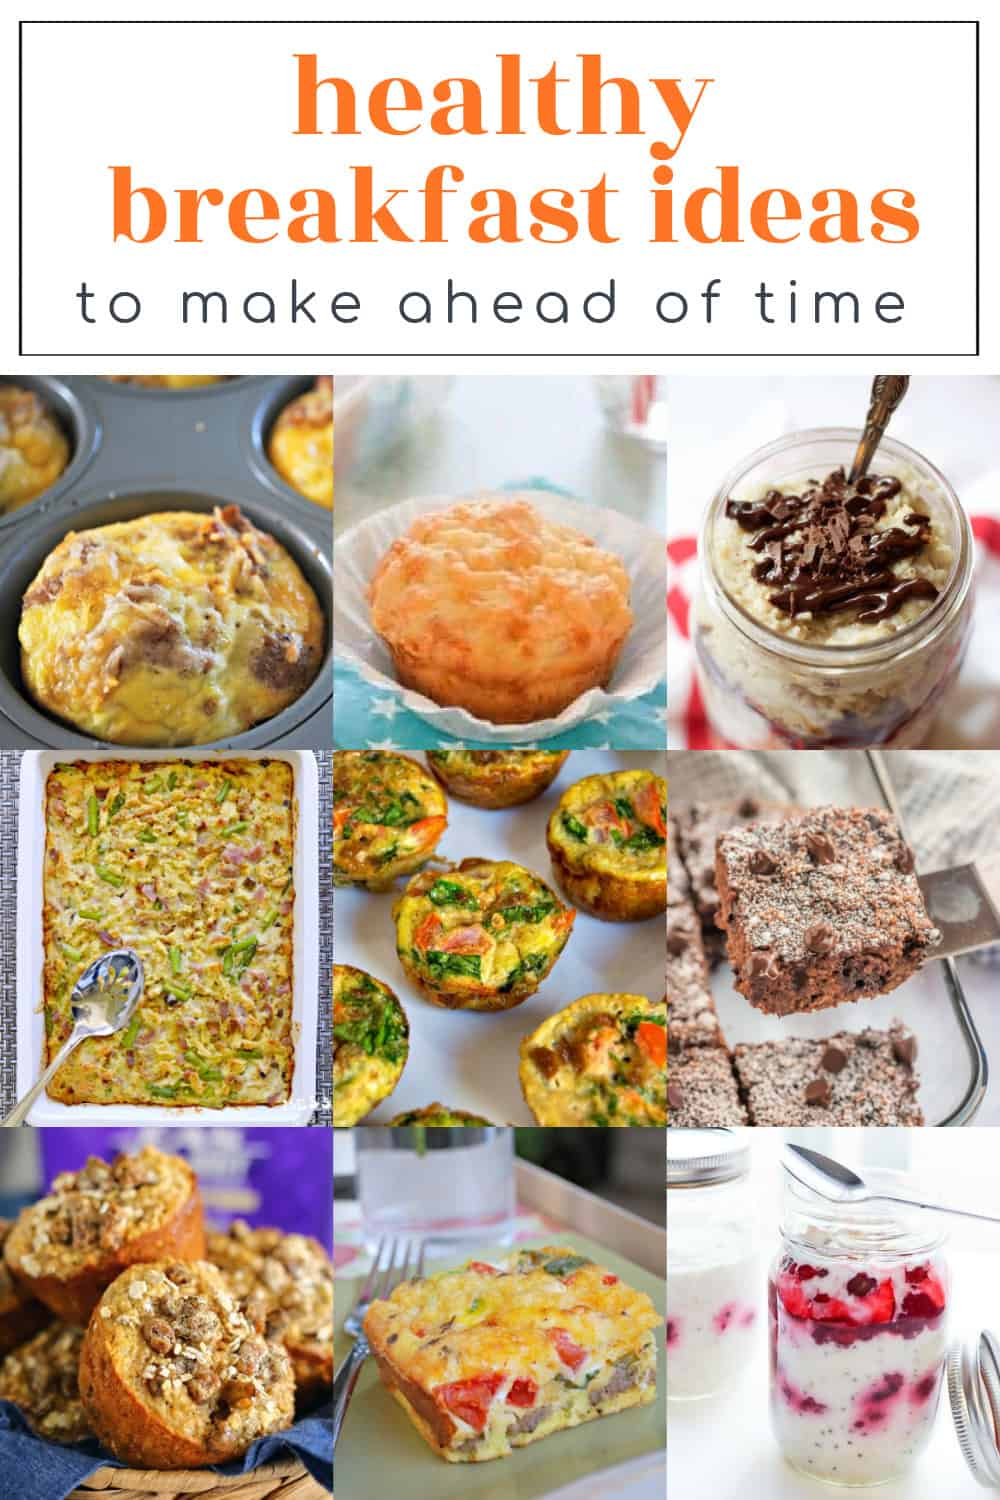 Healthy Breakfast Ideas to Make Ahead of Time